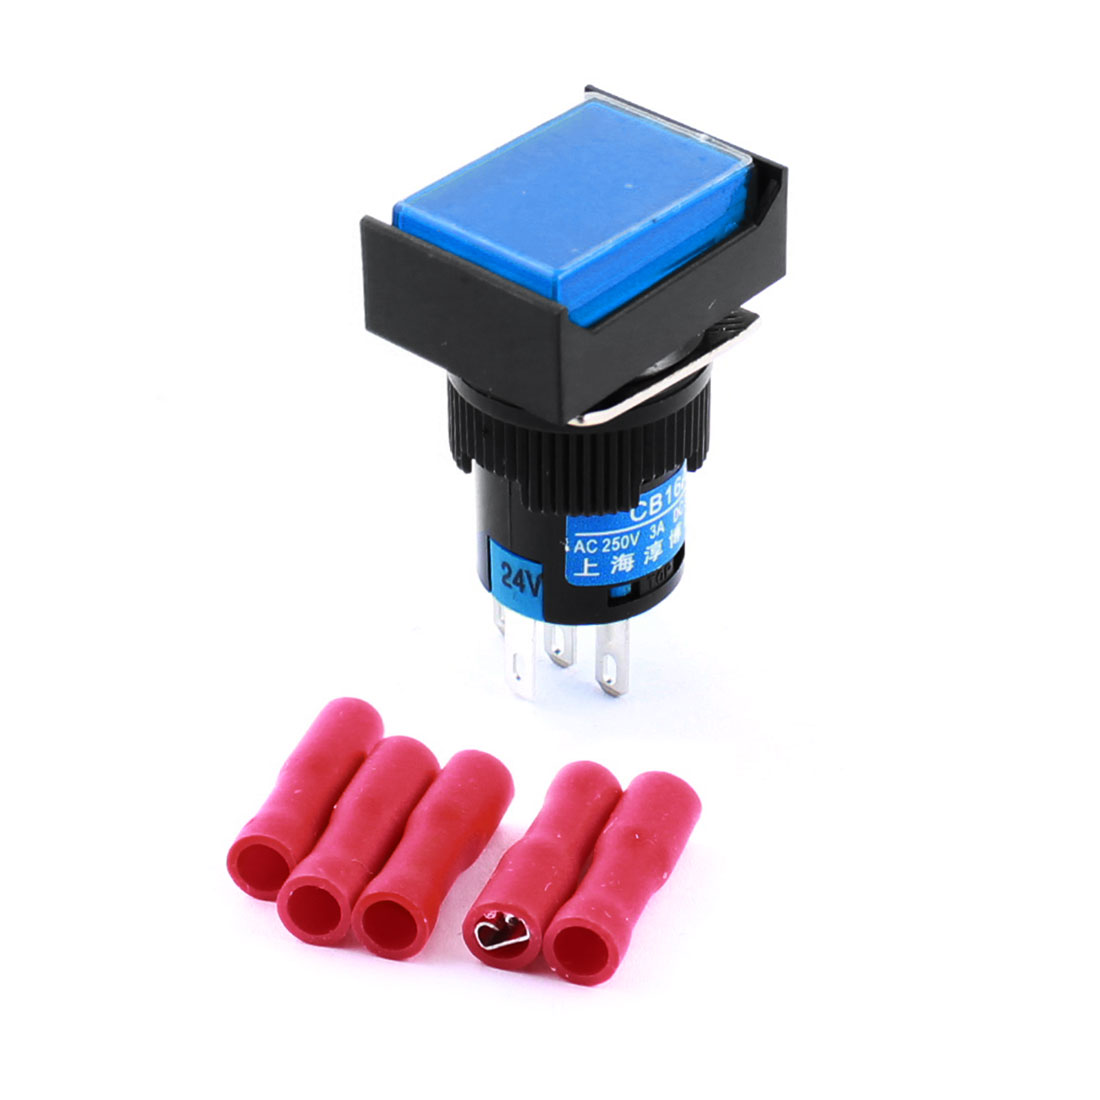 DC 24V Blue Indicator Light Lamp 5Pins 16mm Threaded Panel Mounted SPDT Self Locking Rectangle Head Pushbutton Switch + 5pcs Female Connectors